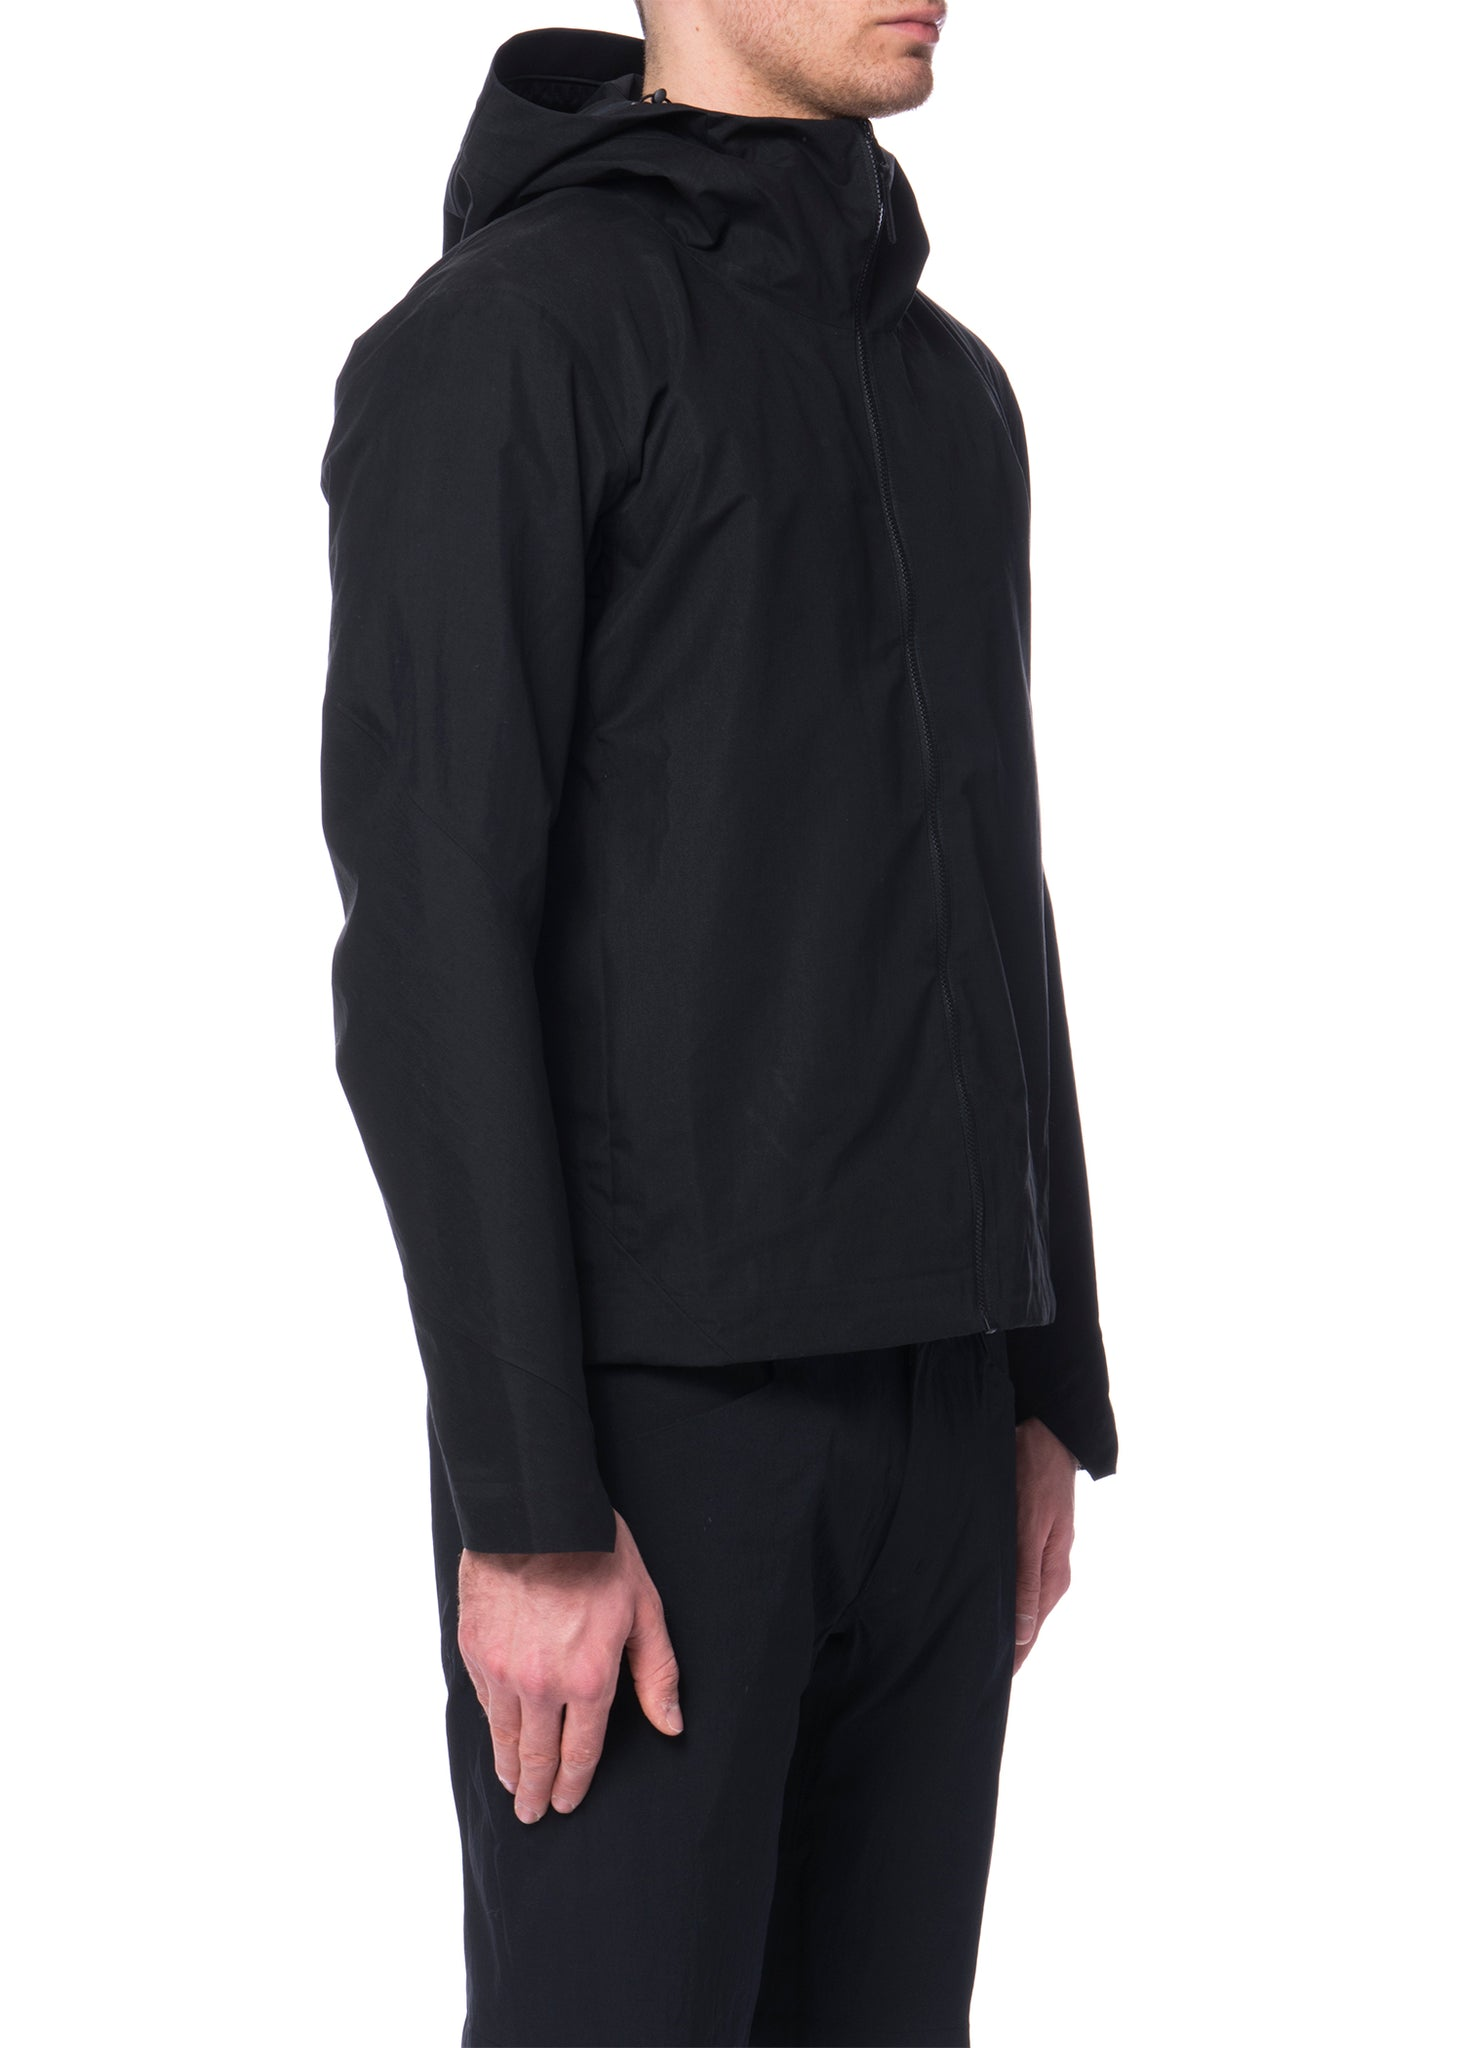 Blouson ISOGON noir|Black ISOGON Jacket